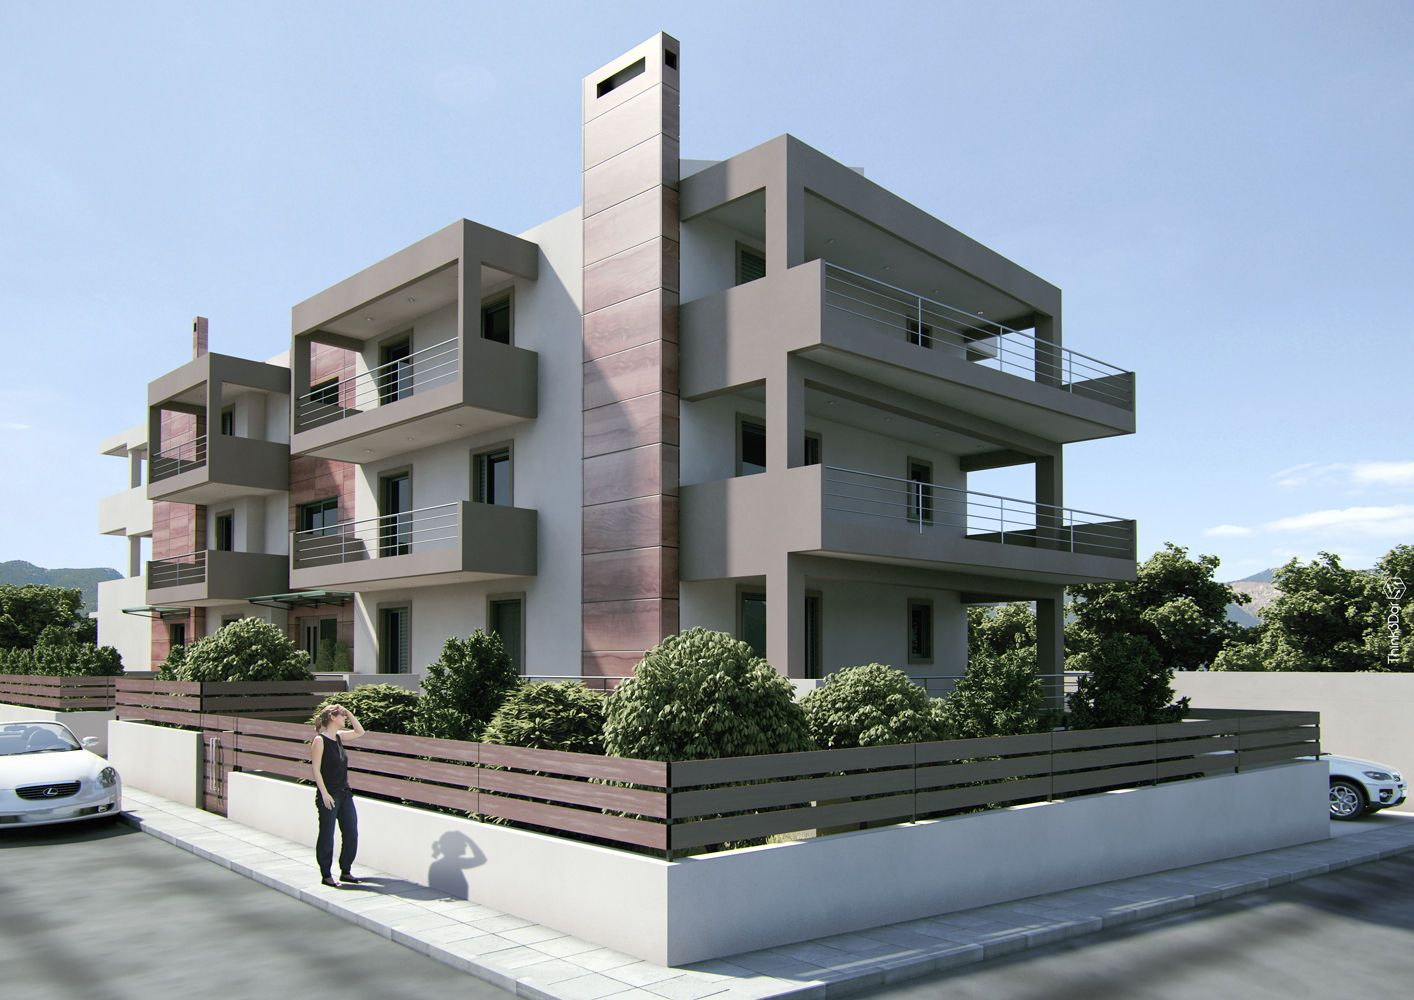 Apartment Building 3 Small Apartment Building Modern Apartment Apartments Exterior